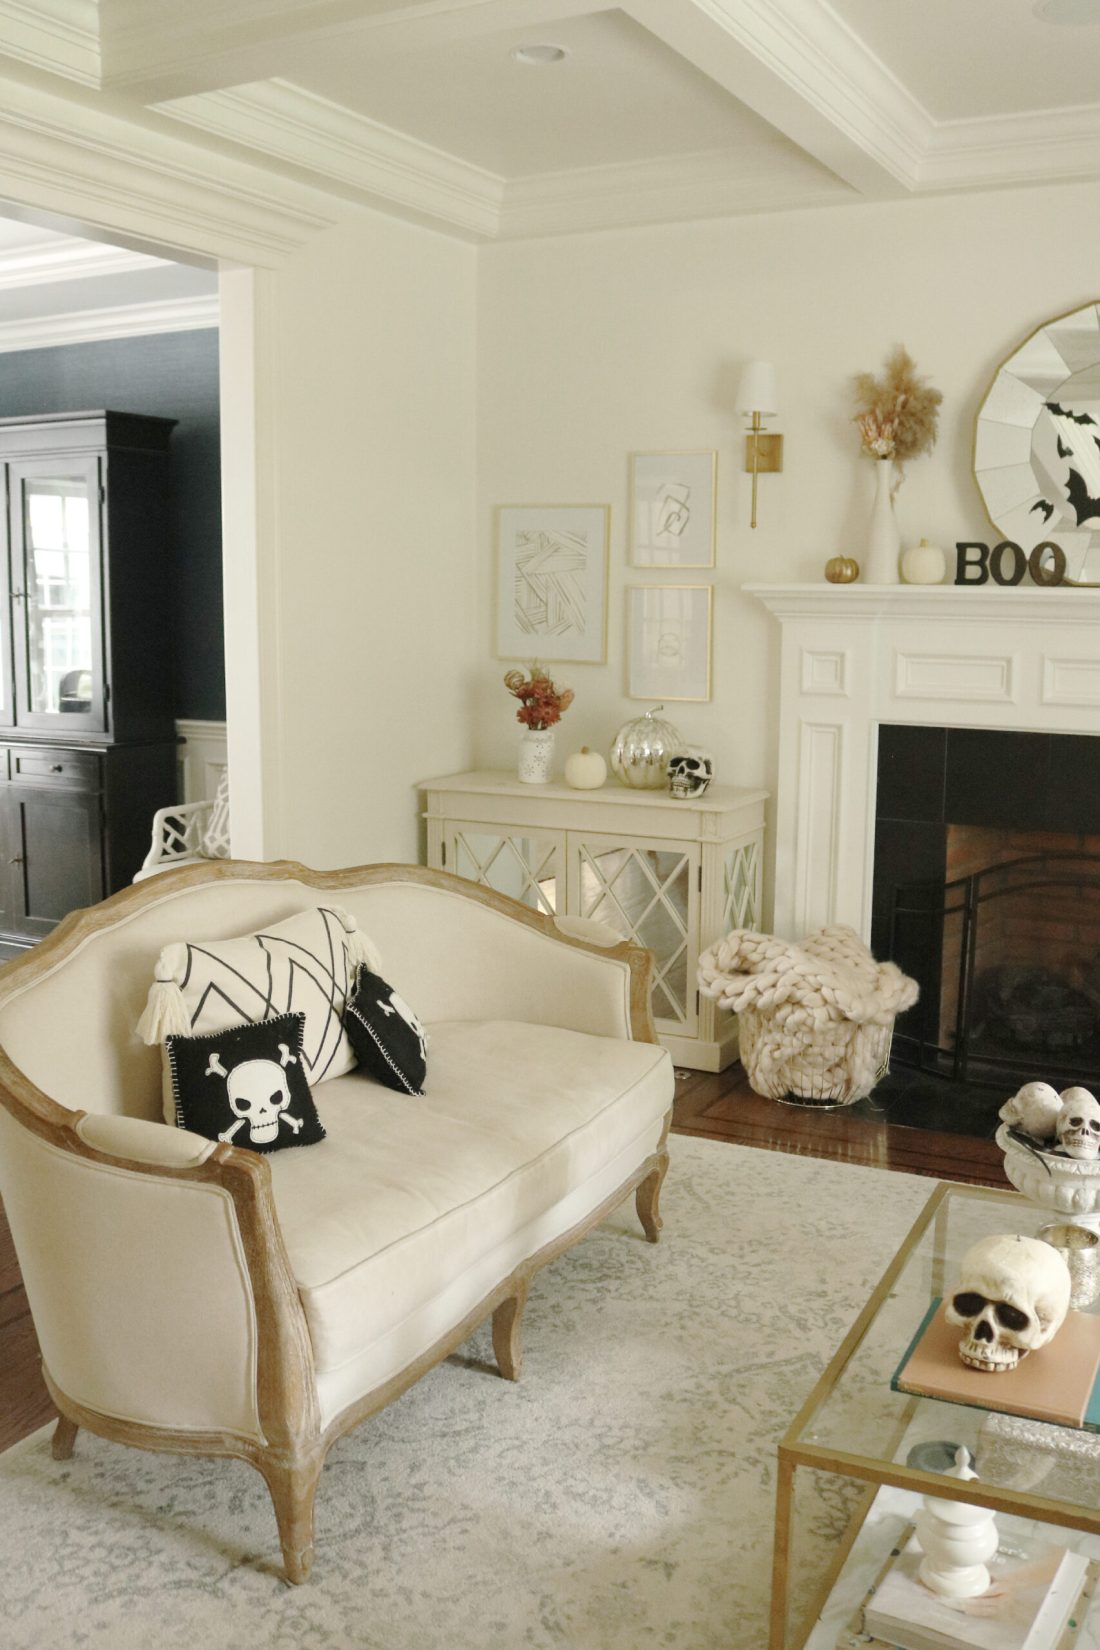 Our not-so-spooky Halloween Home Decorations with spiders and skeletons--simple and easy spooky fun    Darling Darleen Top CT Lifestyle Blogger #darlingdarleen #halloweendecorations